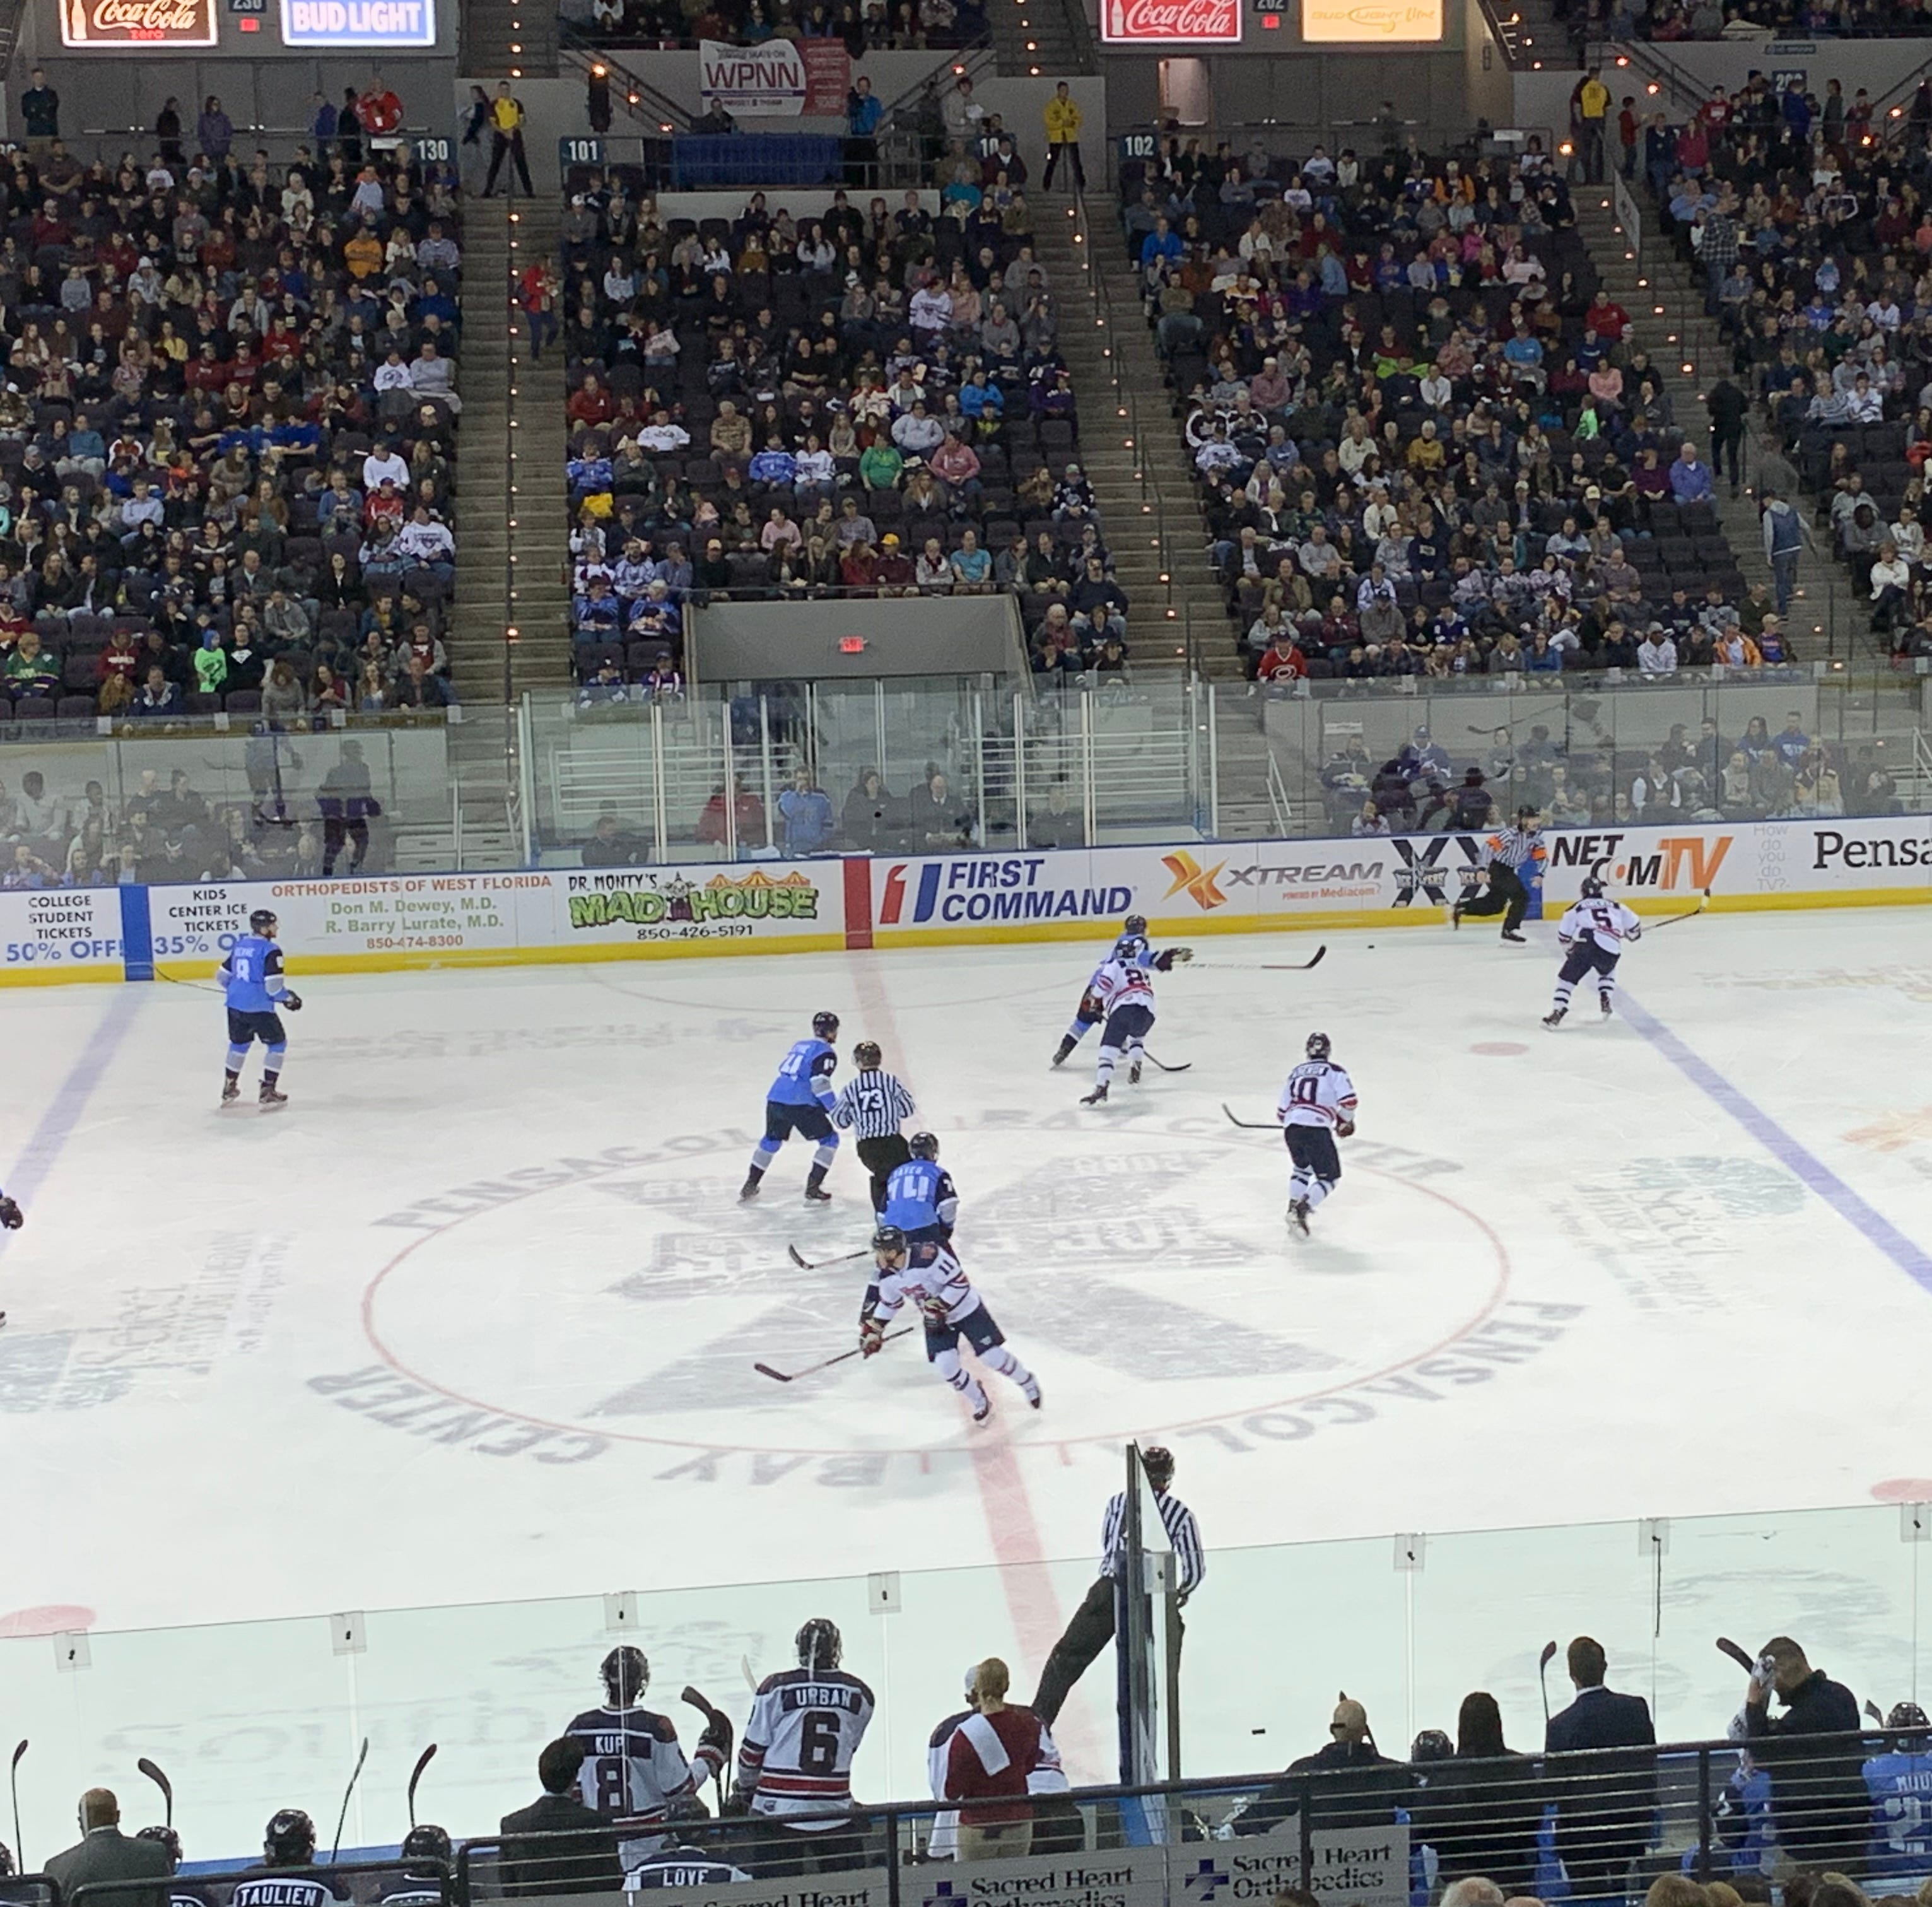 After big weekend in packed arena, Ice Flyers hoping to continue vibe rest of season